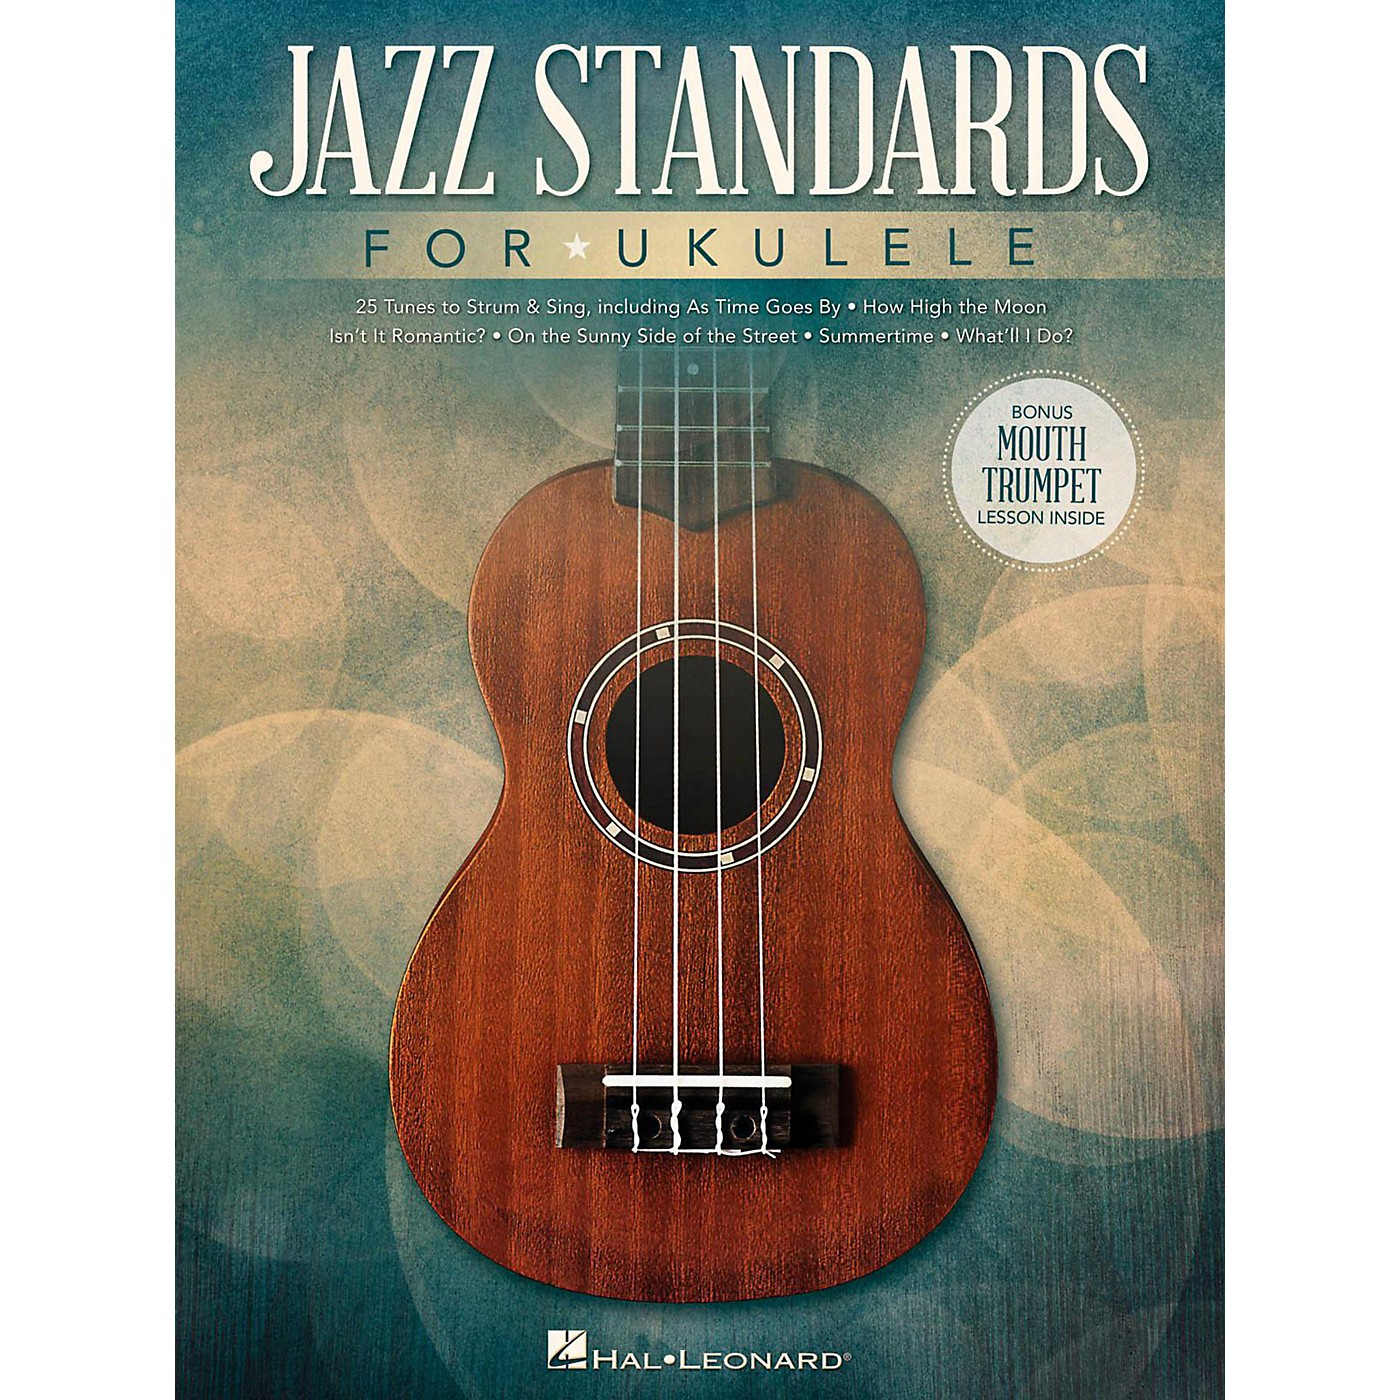 Hal Leonard Jazz Standards for Ukulele (Includes Bonus Mouth Trumpet Lesson!) thumbnail